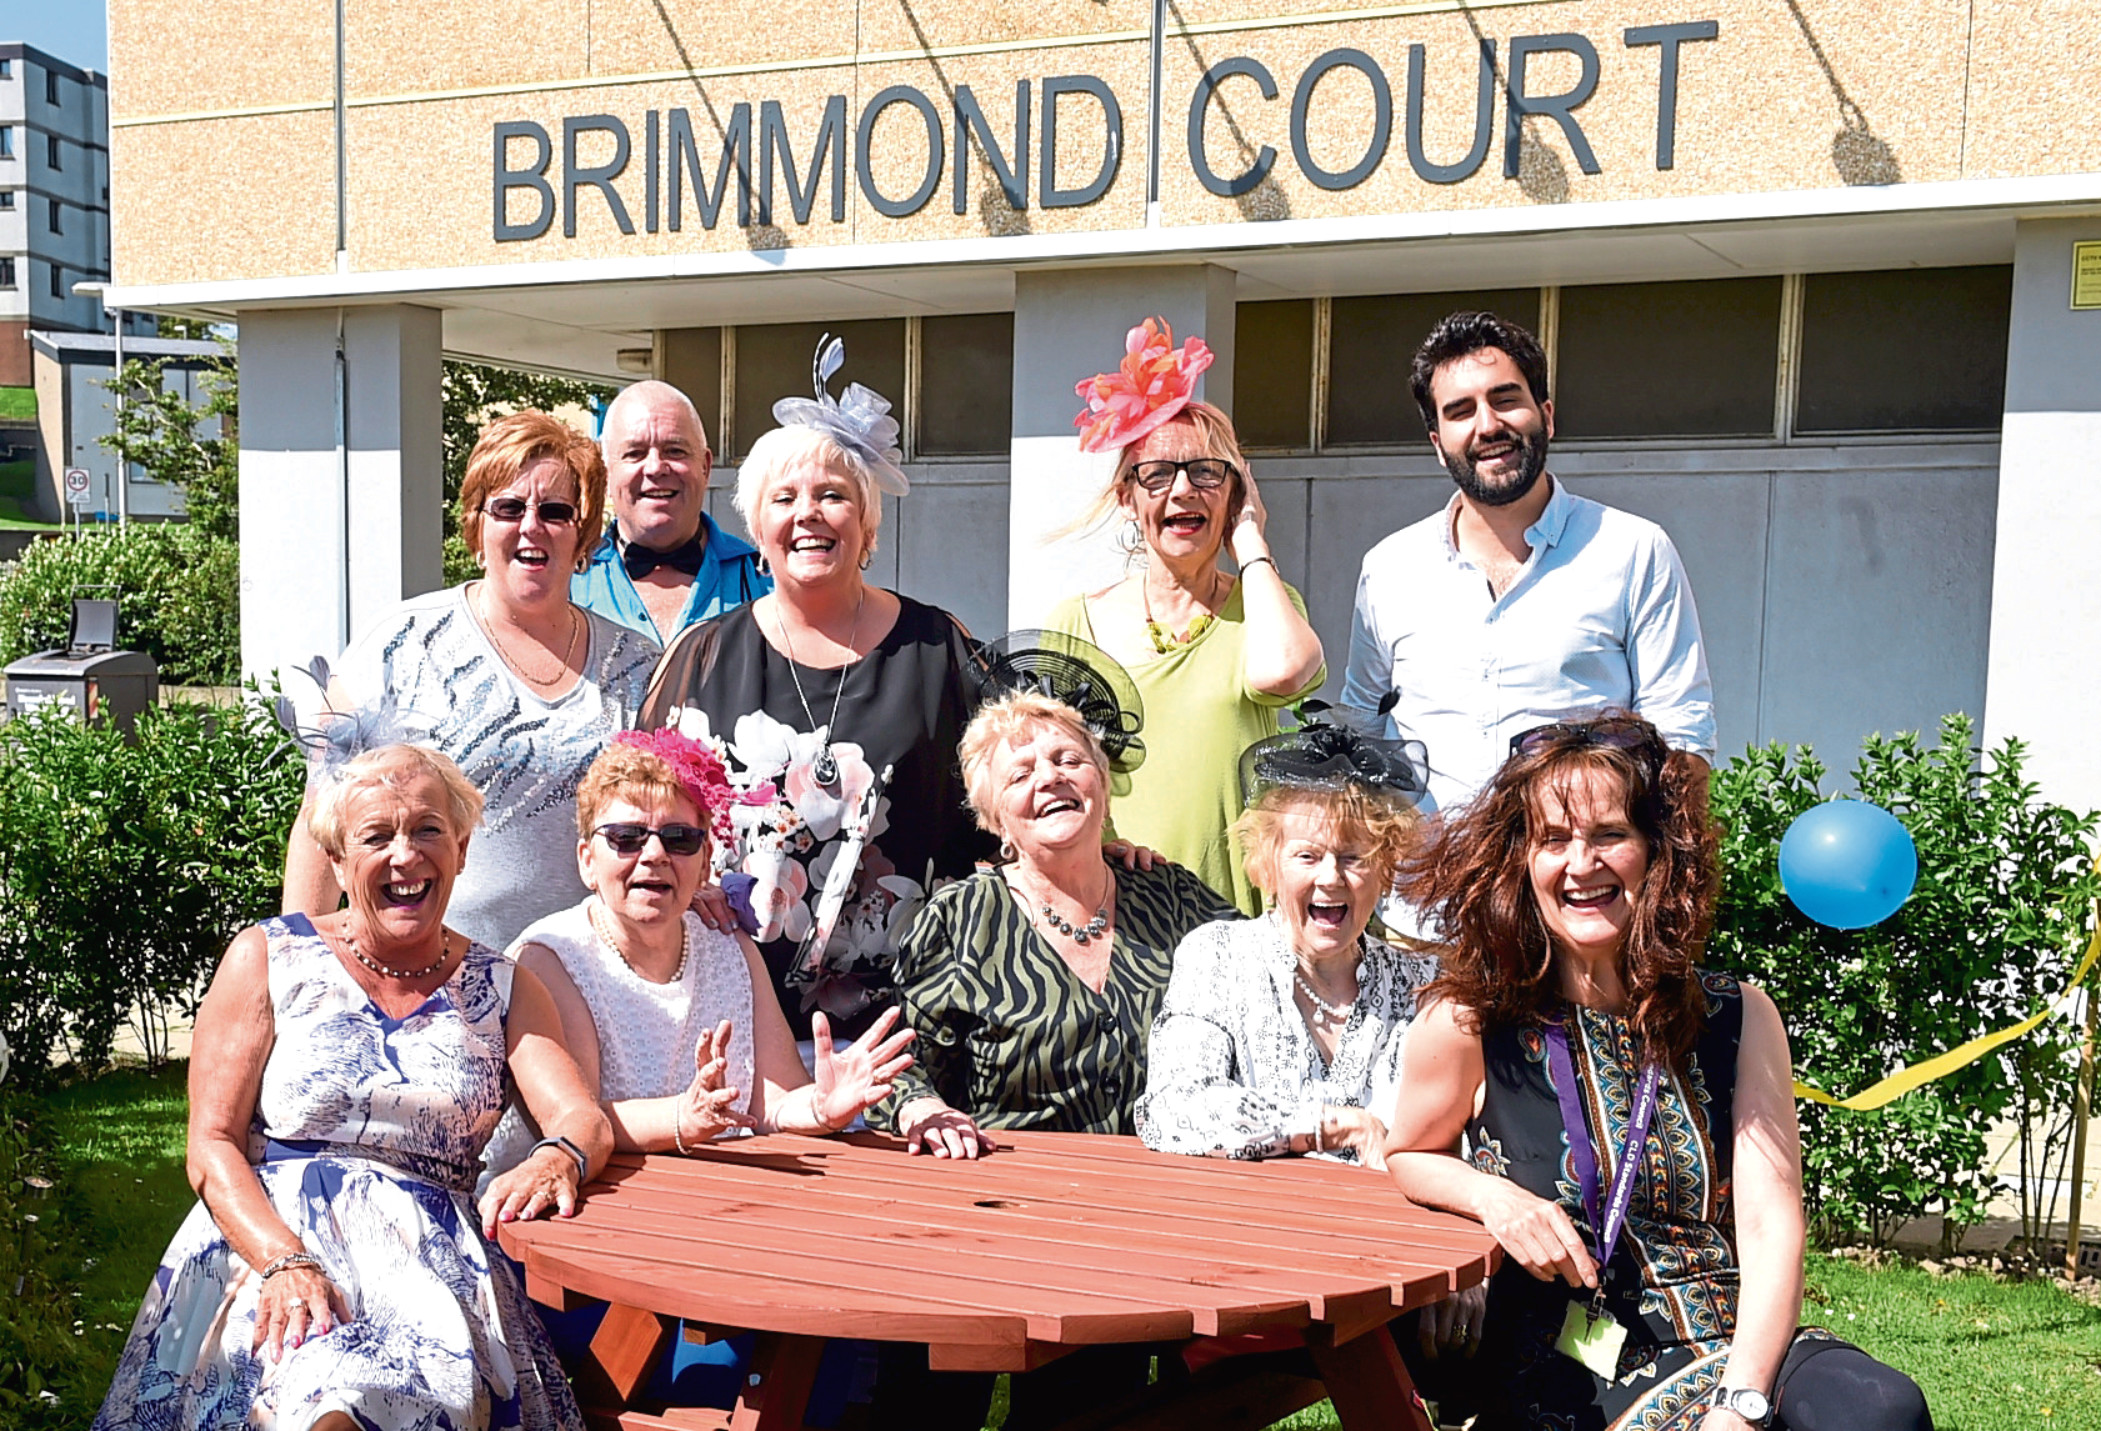 Members of Brimmond Court Tenants' Association and sponsors of the project